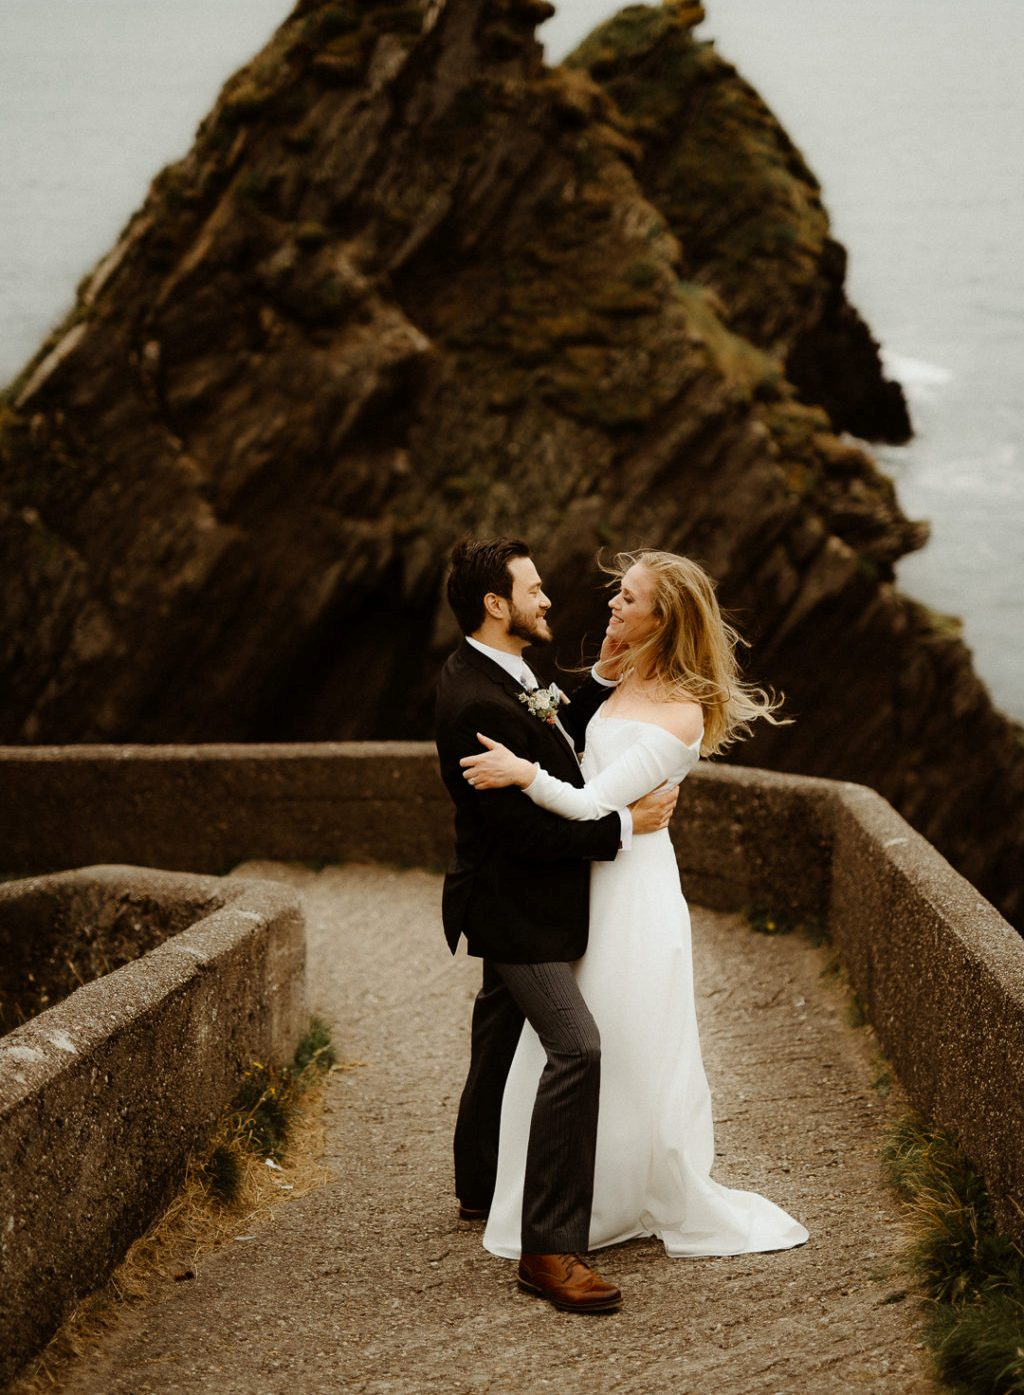 This American couple went for a modern fairytale wedding in Ireland, with the views of Atlantics